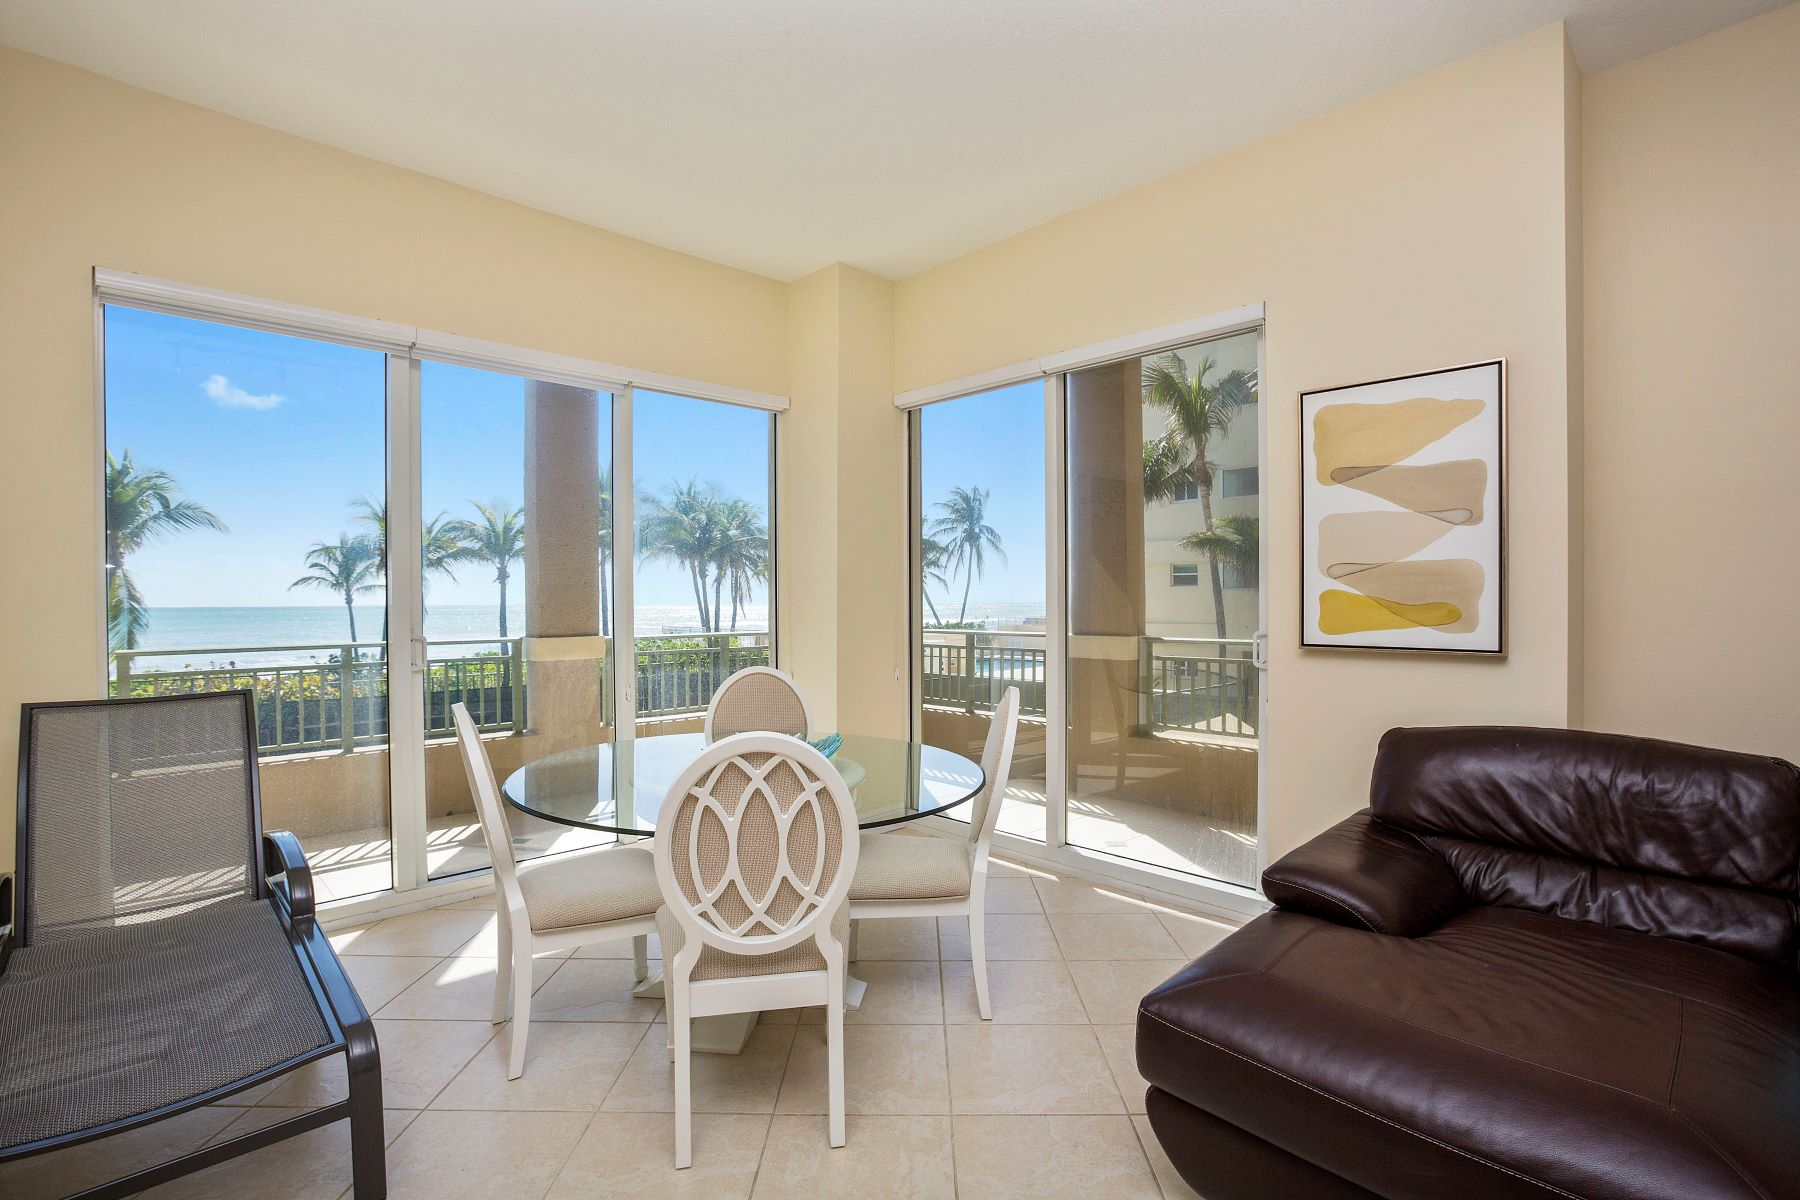 Condominiums for Sale at JUST REDUCED! 2080 S Ocean Dr 111 Hallandale, Florida 33009 United States